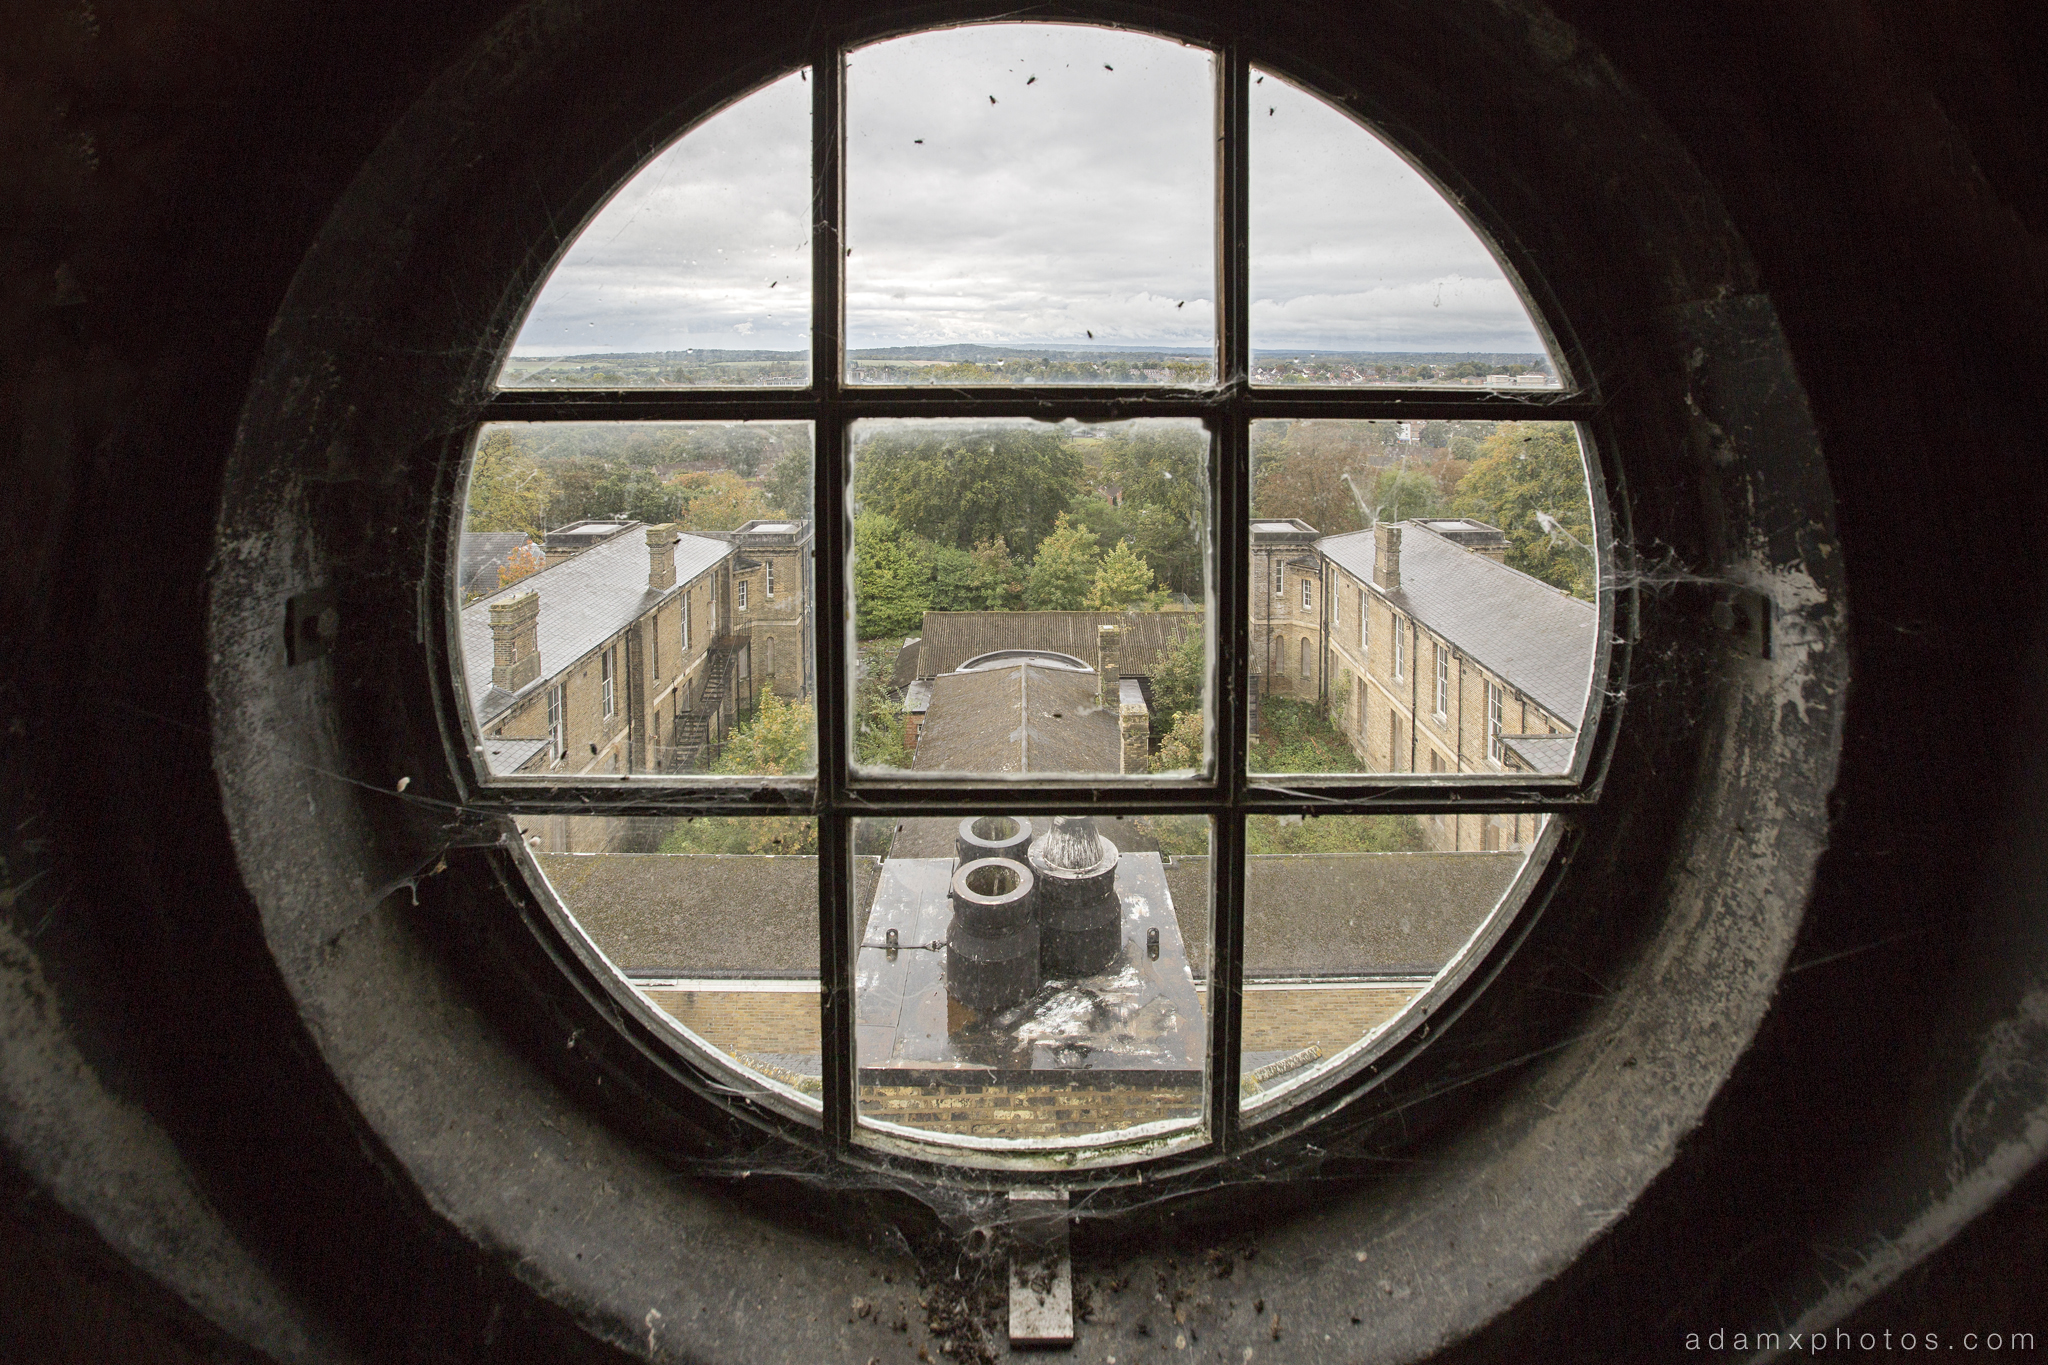 View from the clocktower clock tower round window circular X-ray Labs lab laboratory x ray CMH Cambridge Military Hospital Adam X Urbex UE Urban Exploration abandoned derelict unused empty disused decay decayed decaying grimy grime